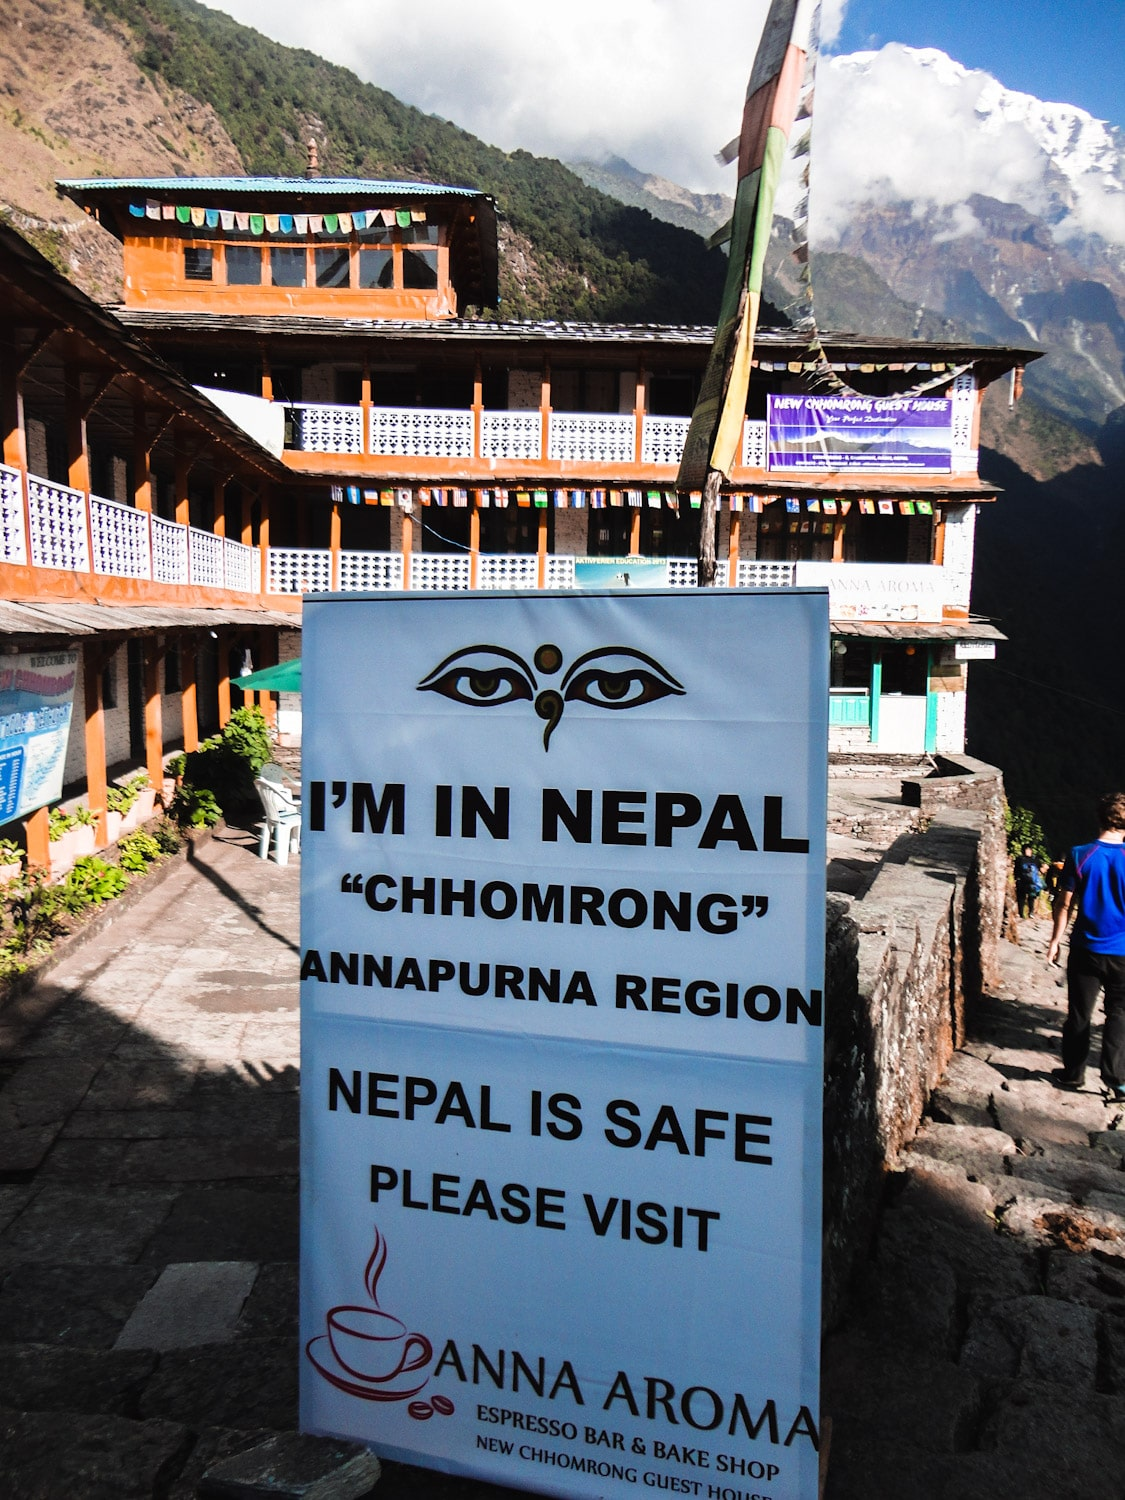 Chomrong ABC Annapurna Base Camp Trek Itinerary| Bucketlist Bri